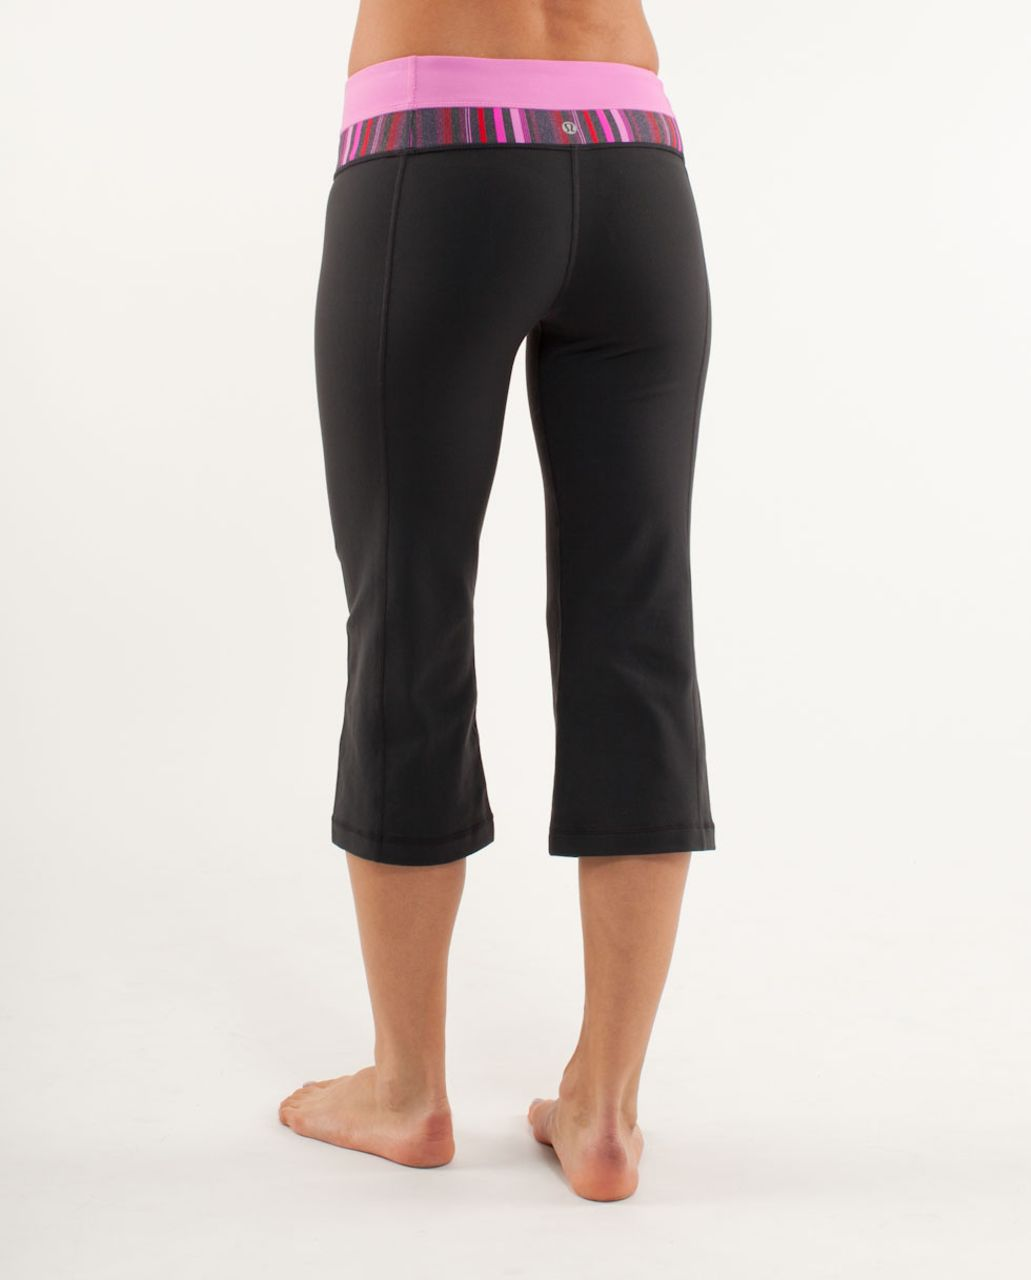 Lululemon Groove Crop - Black /  Elevation Space Dye